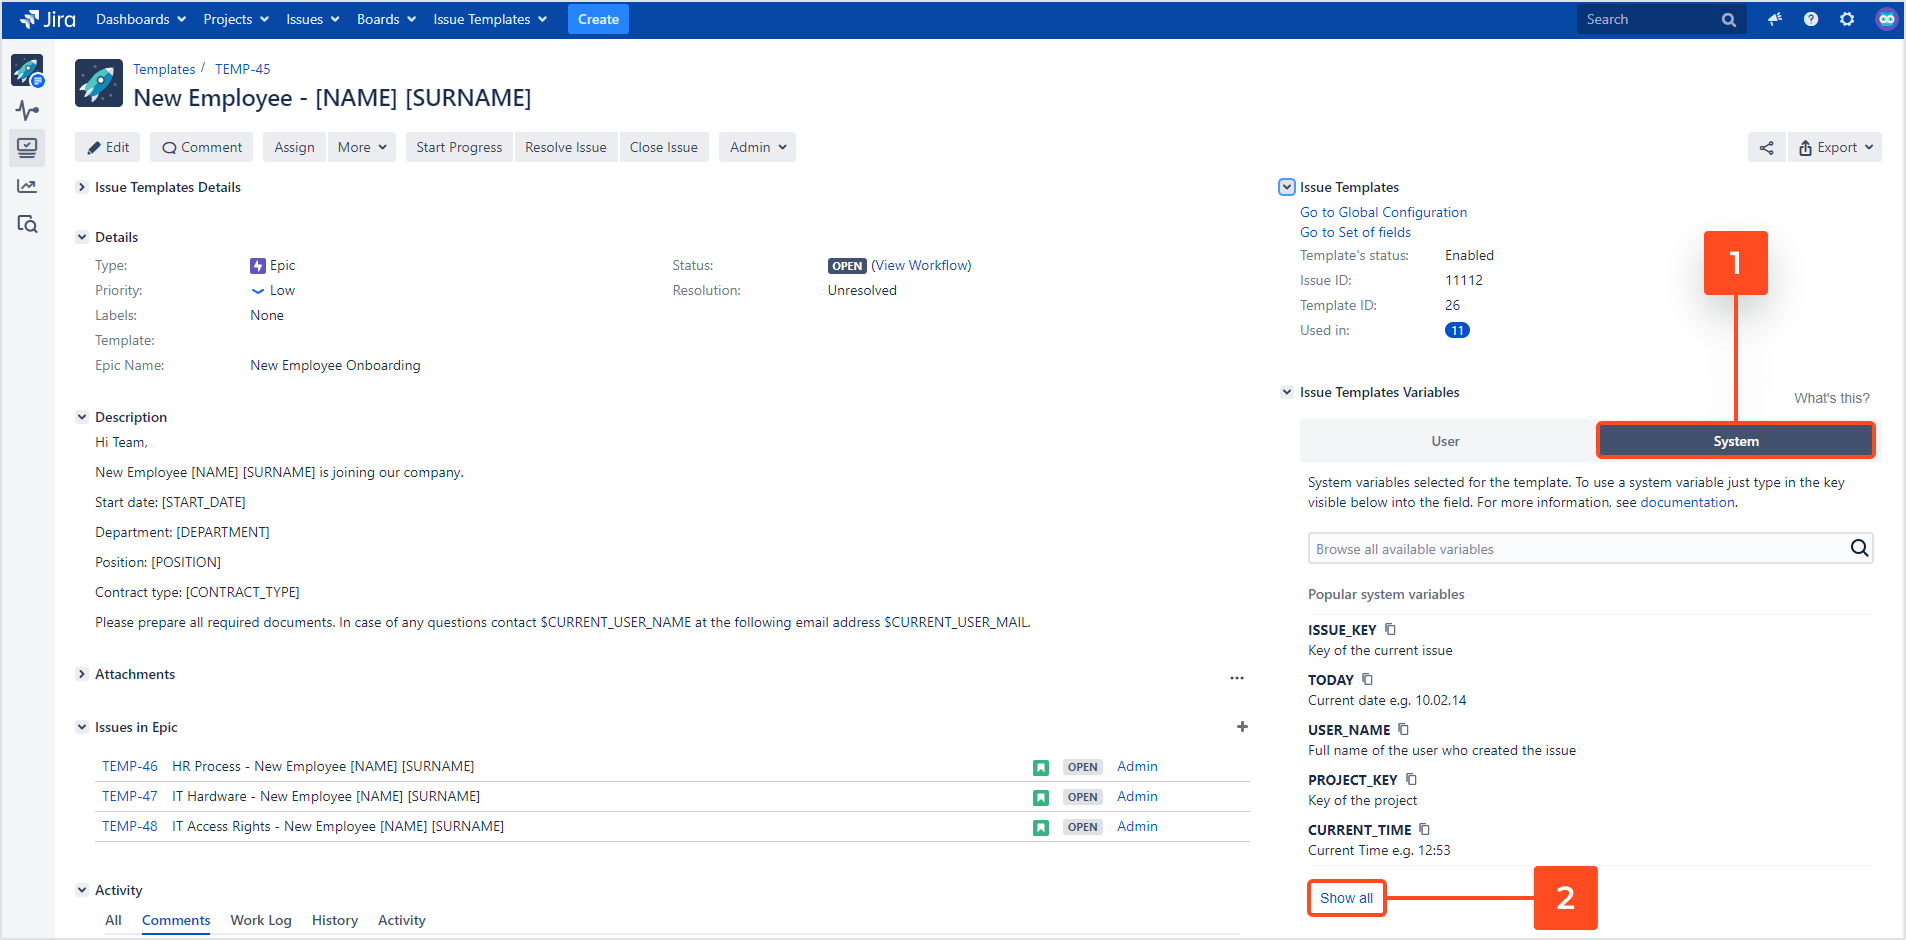 Issue Templates for Jira - Variables